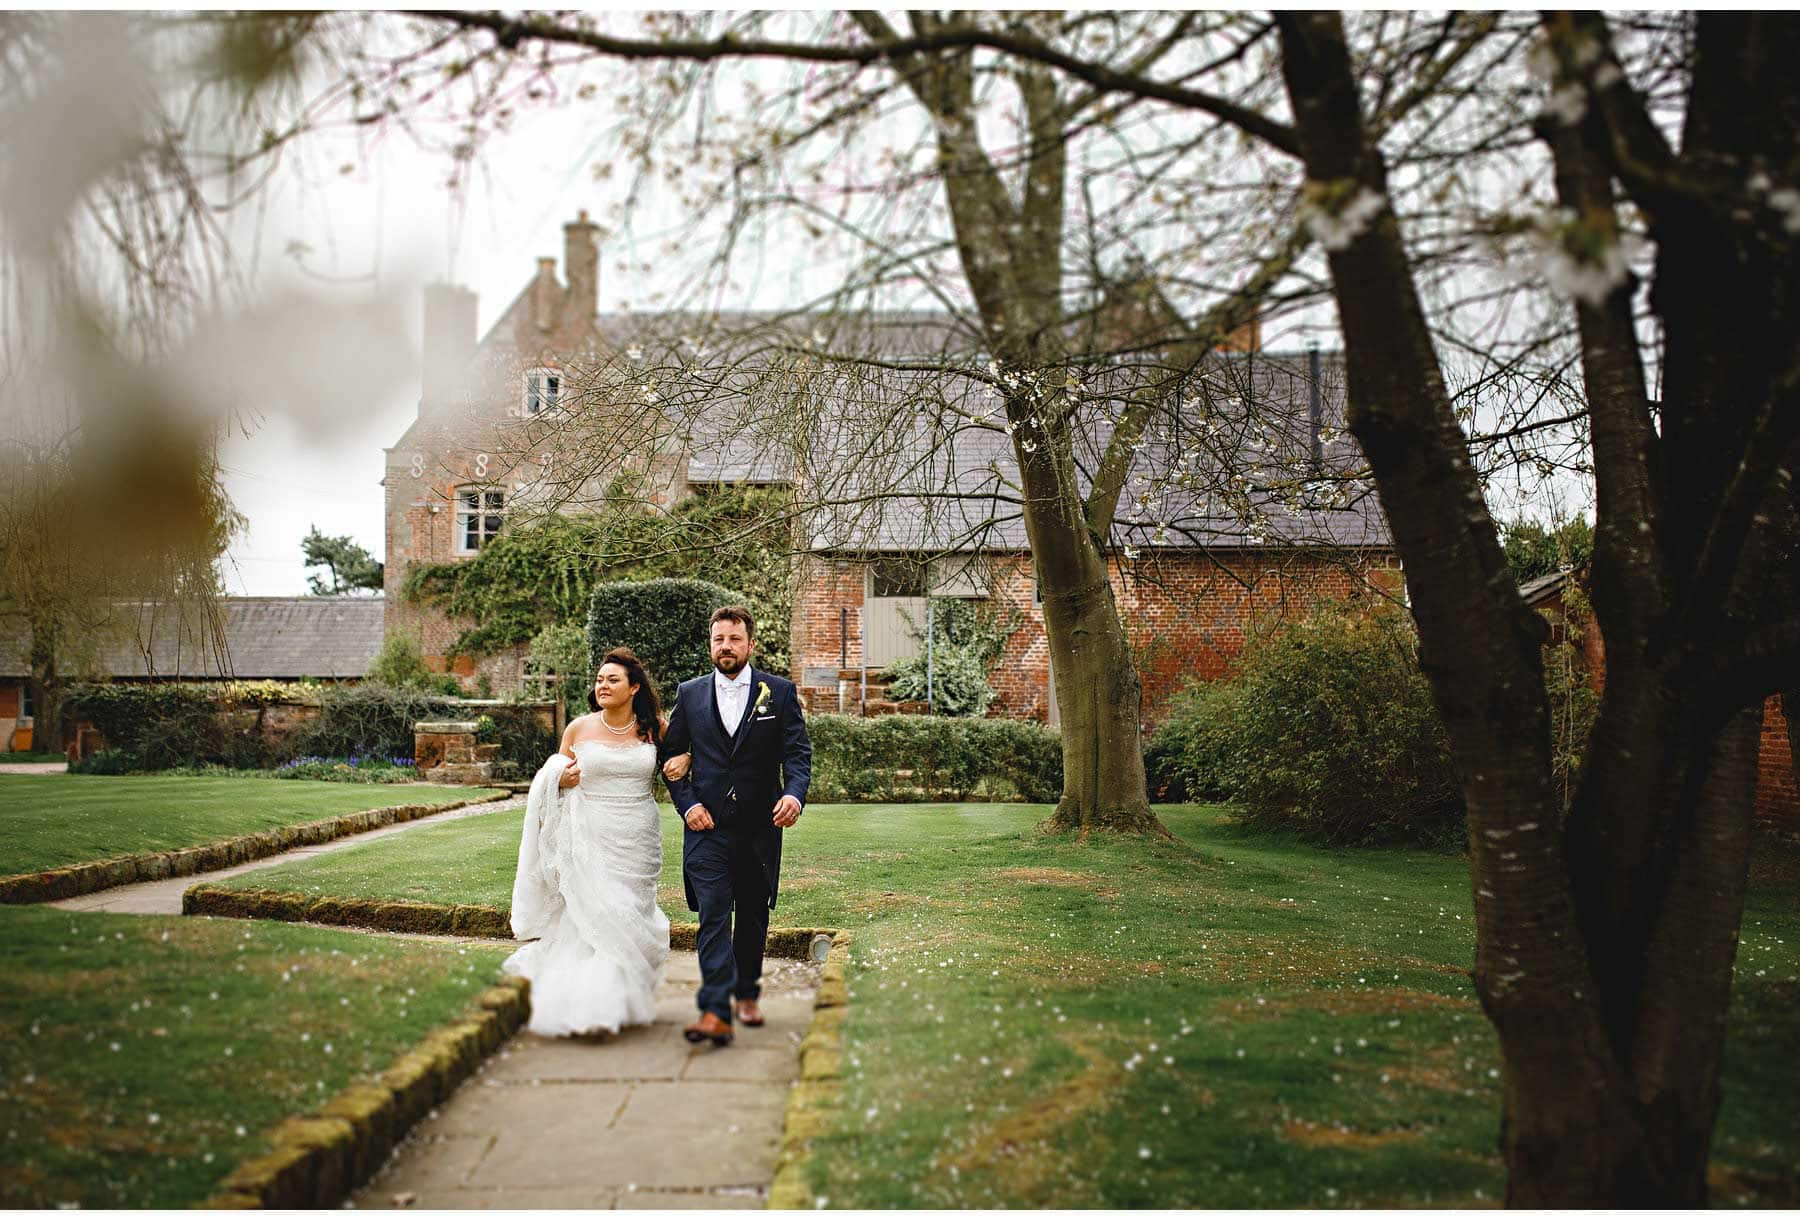 the bride and groom walking away from the main house